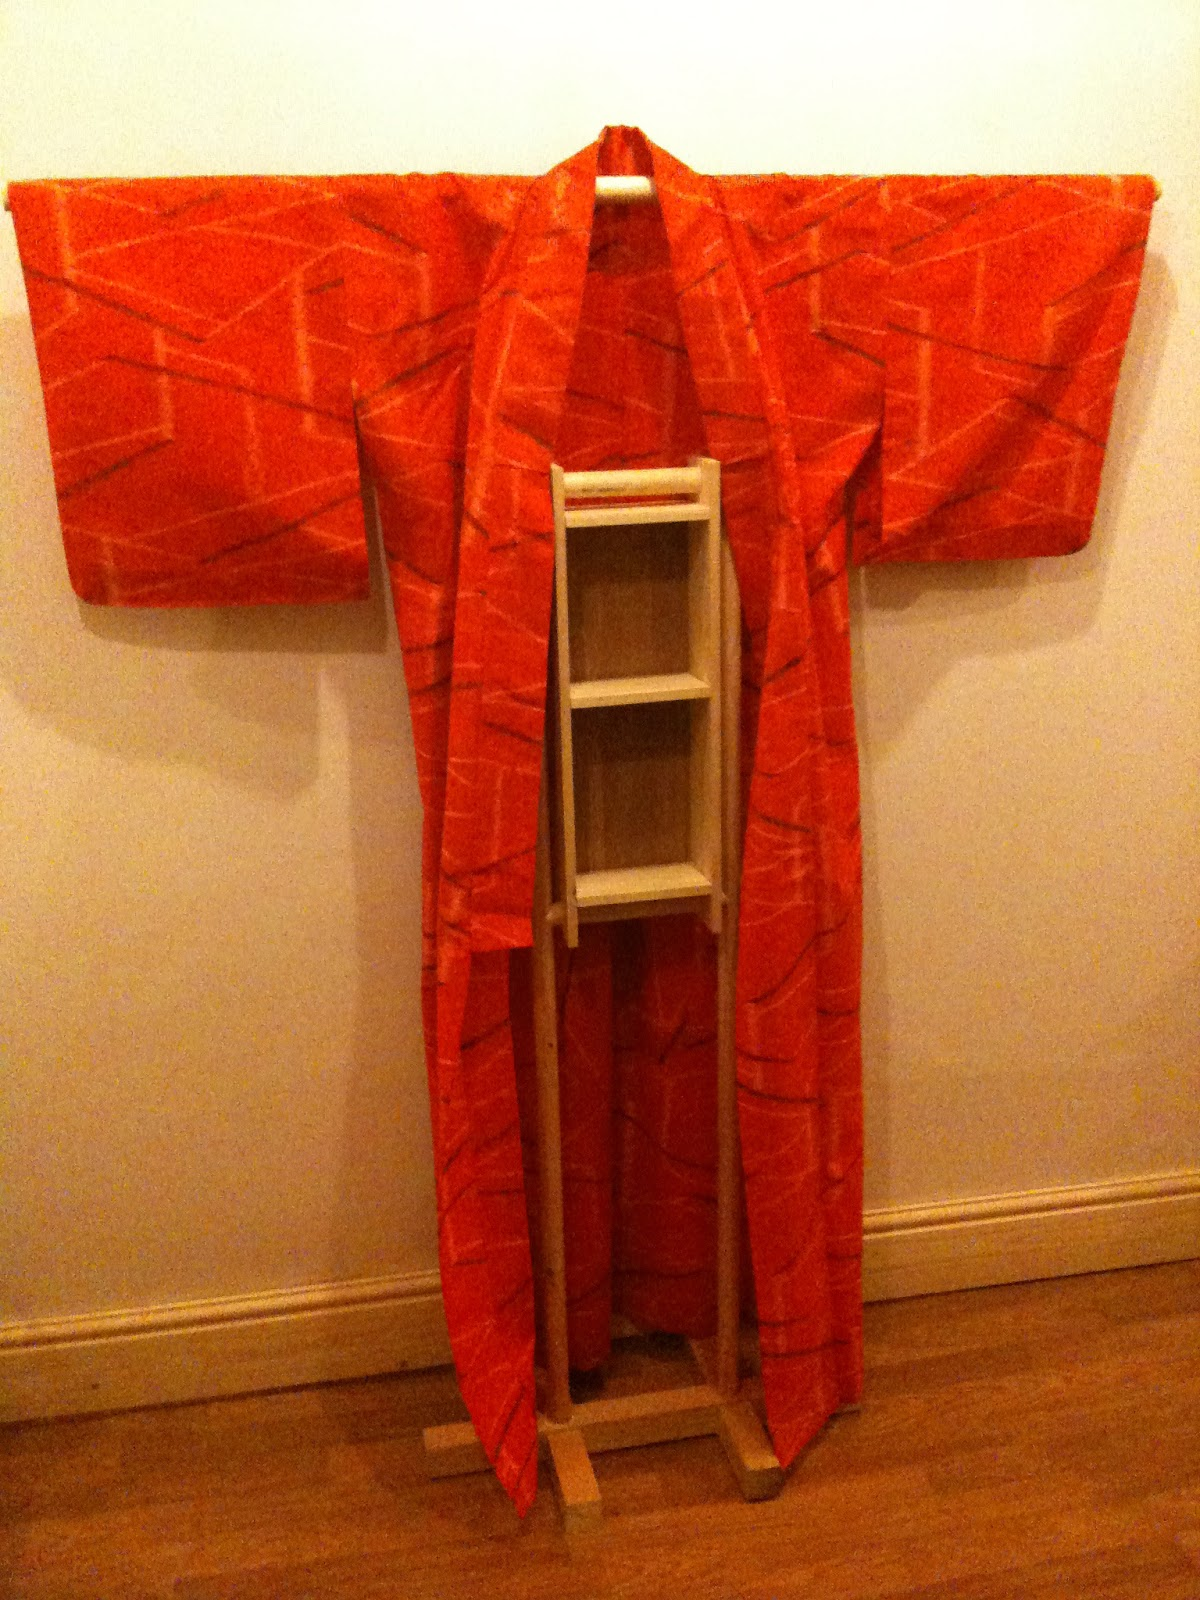 Little side projects for home  Kimono stand  A View From